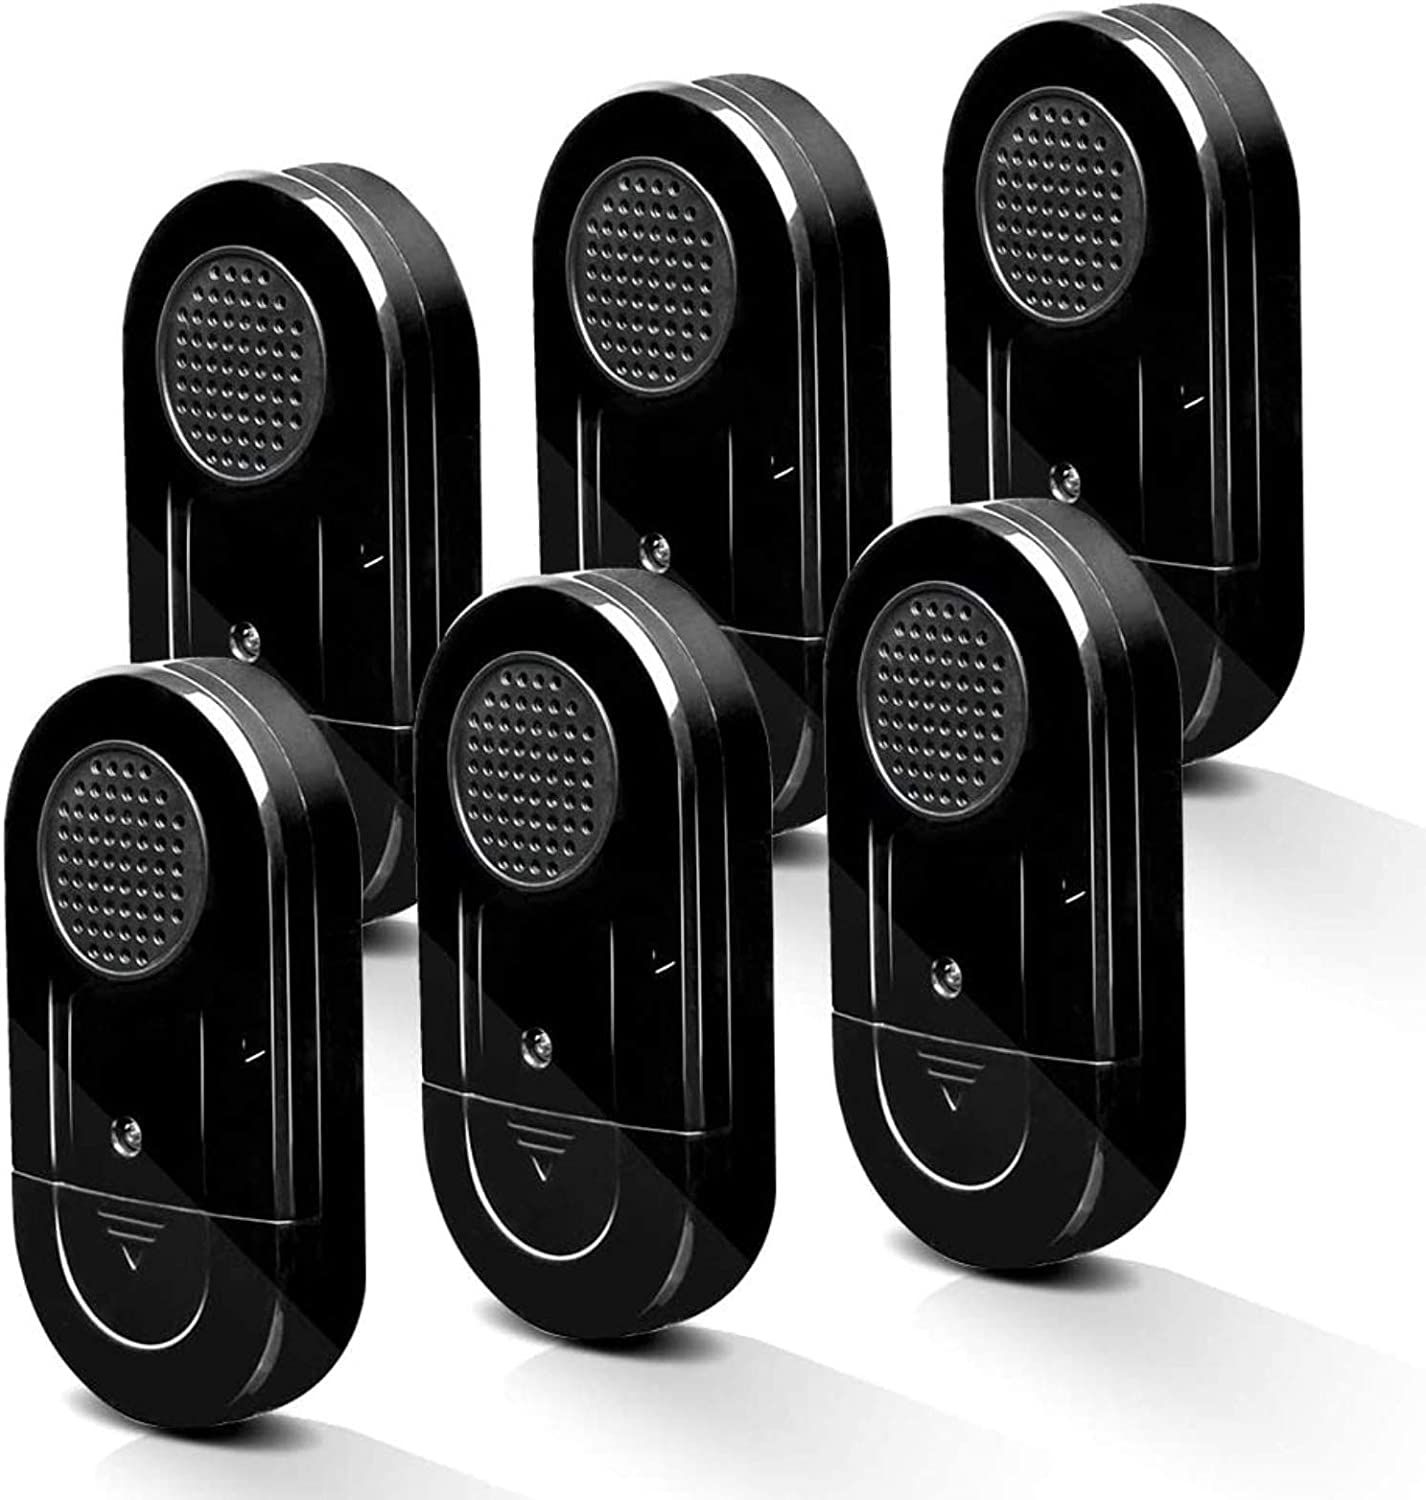 SanJie Window Alarm, Glass Break Alarm Vibration Detector with 120 dB for Home Security 6 Pack